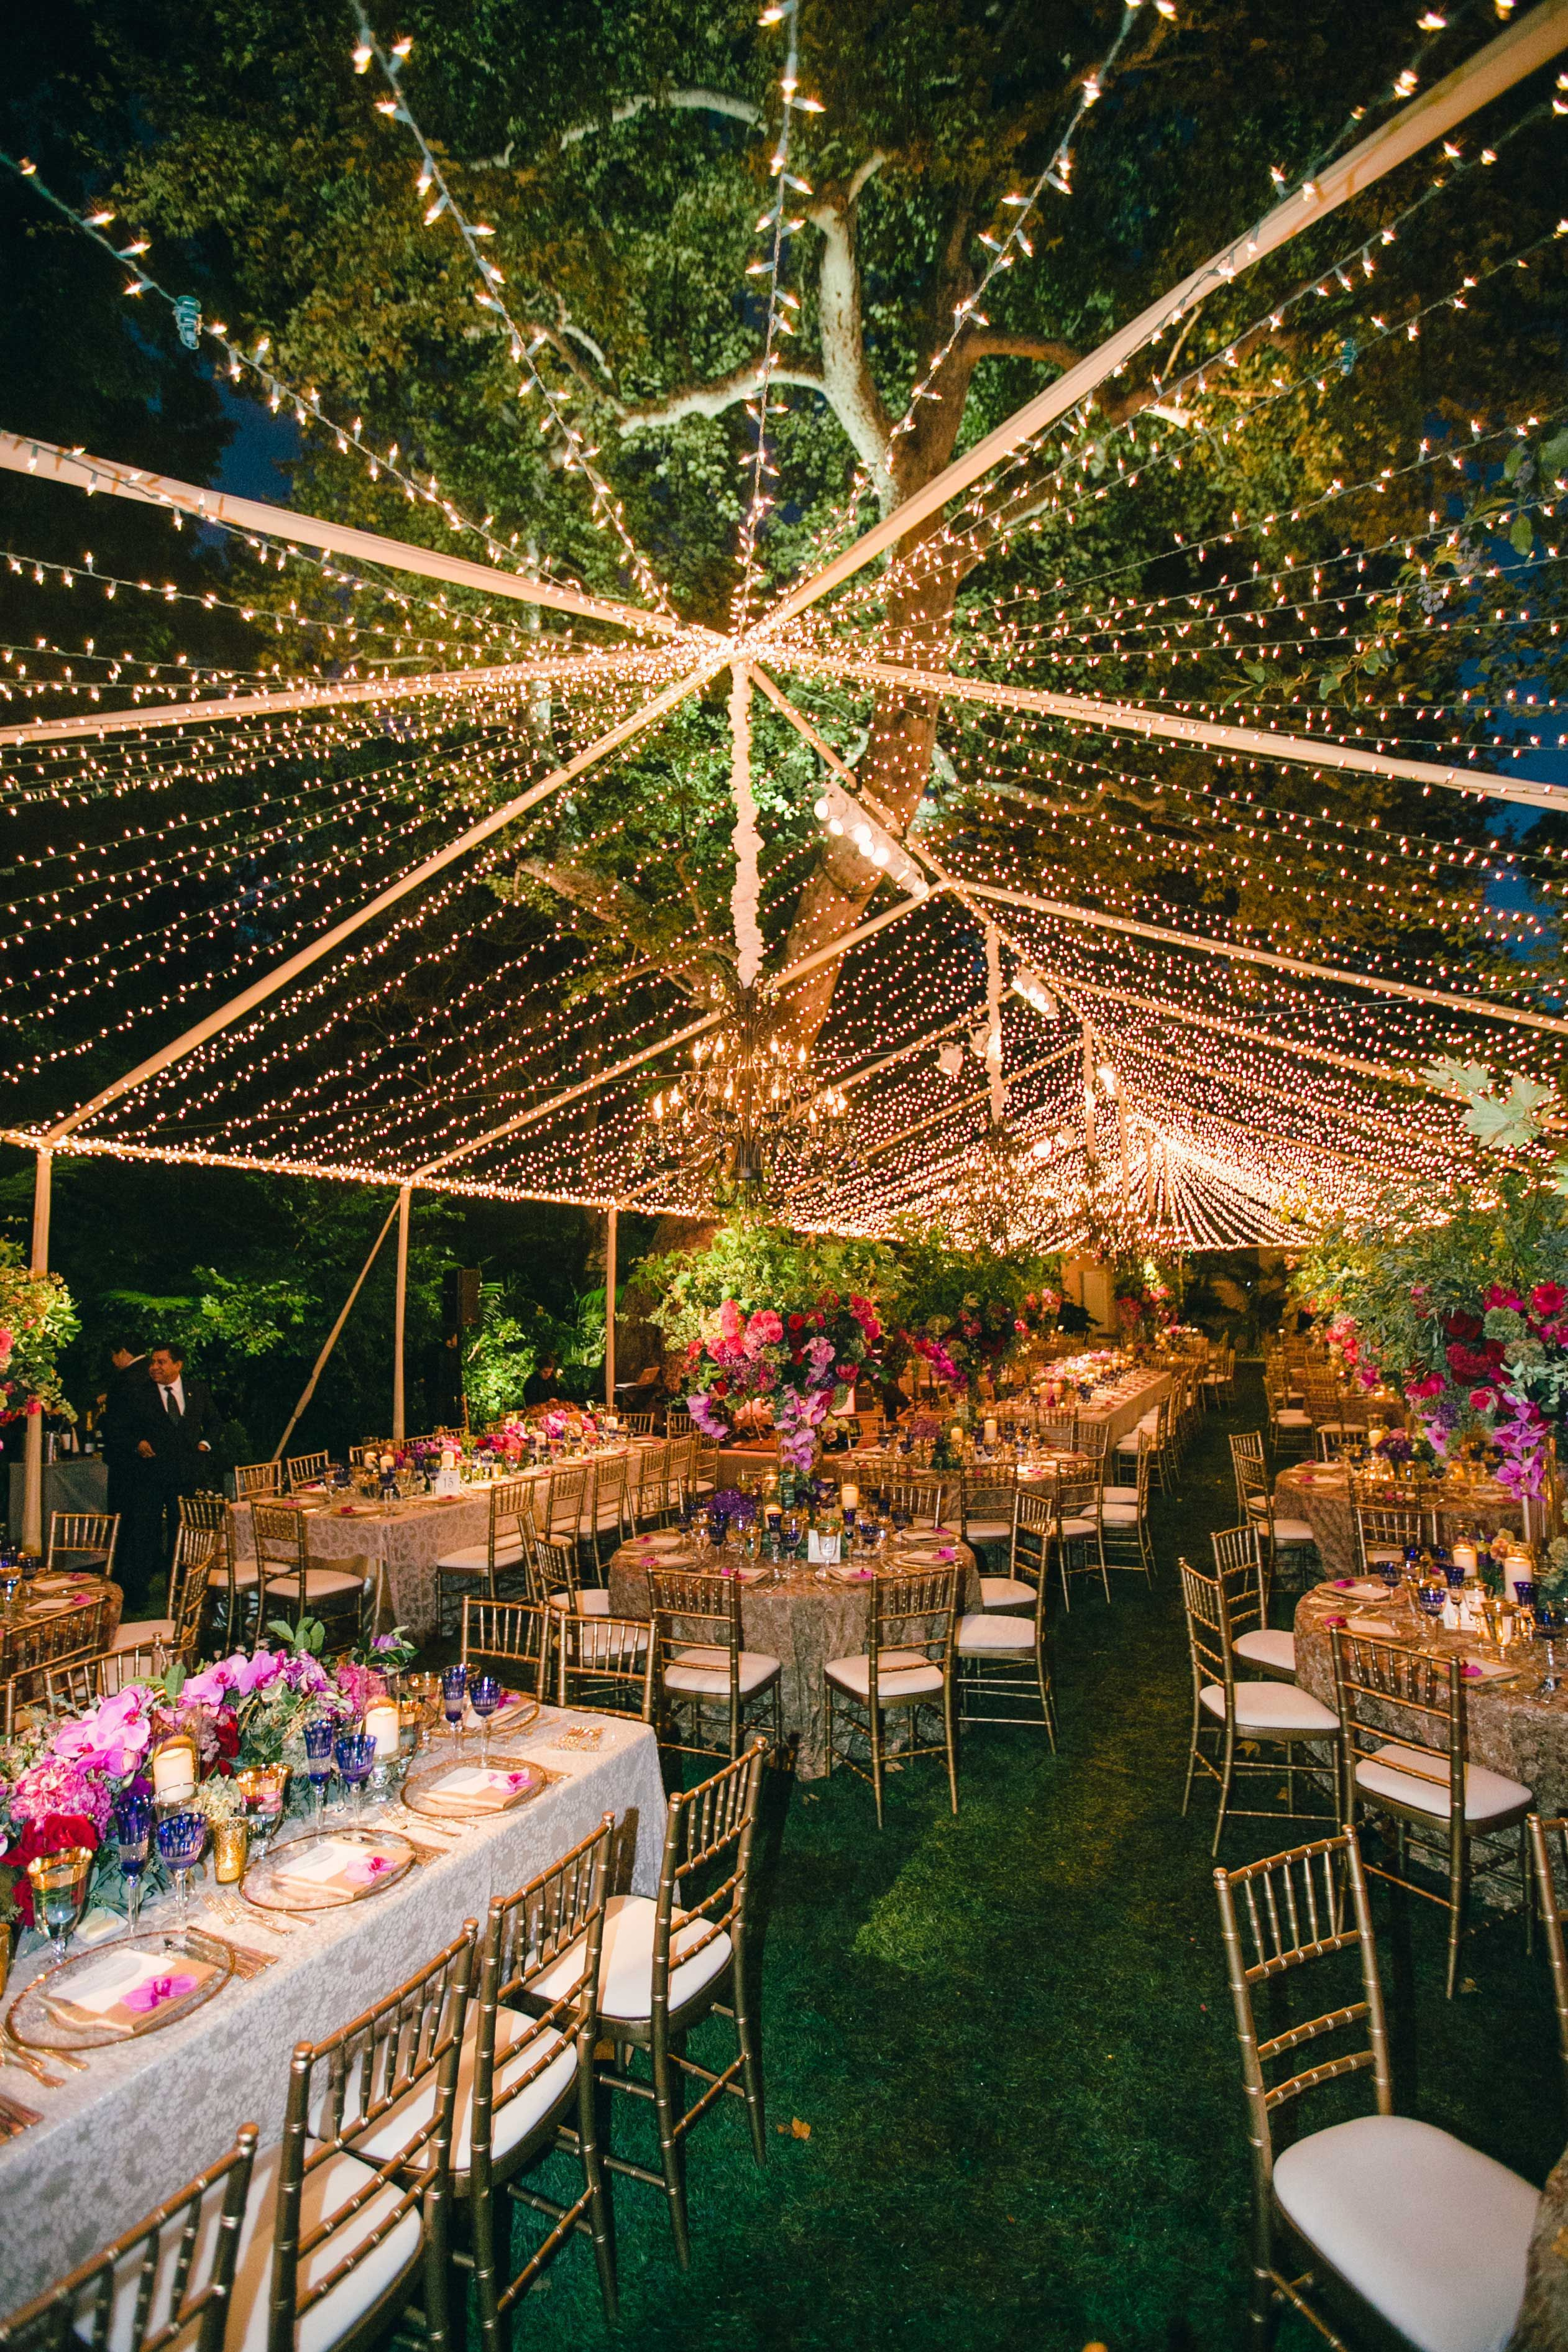 Lighting For Outdoor Wedding How to instantly transform your wedding with string lights tents how to instantly transform your wedding with string lights workwithnaturefo